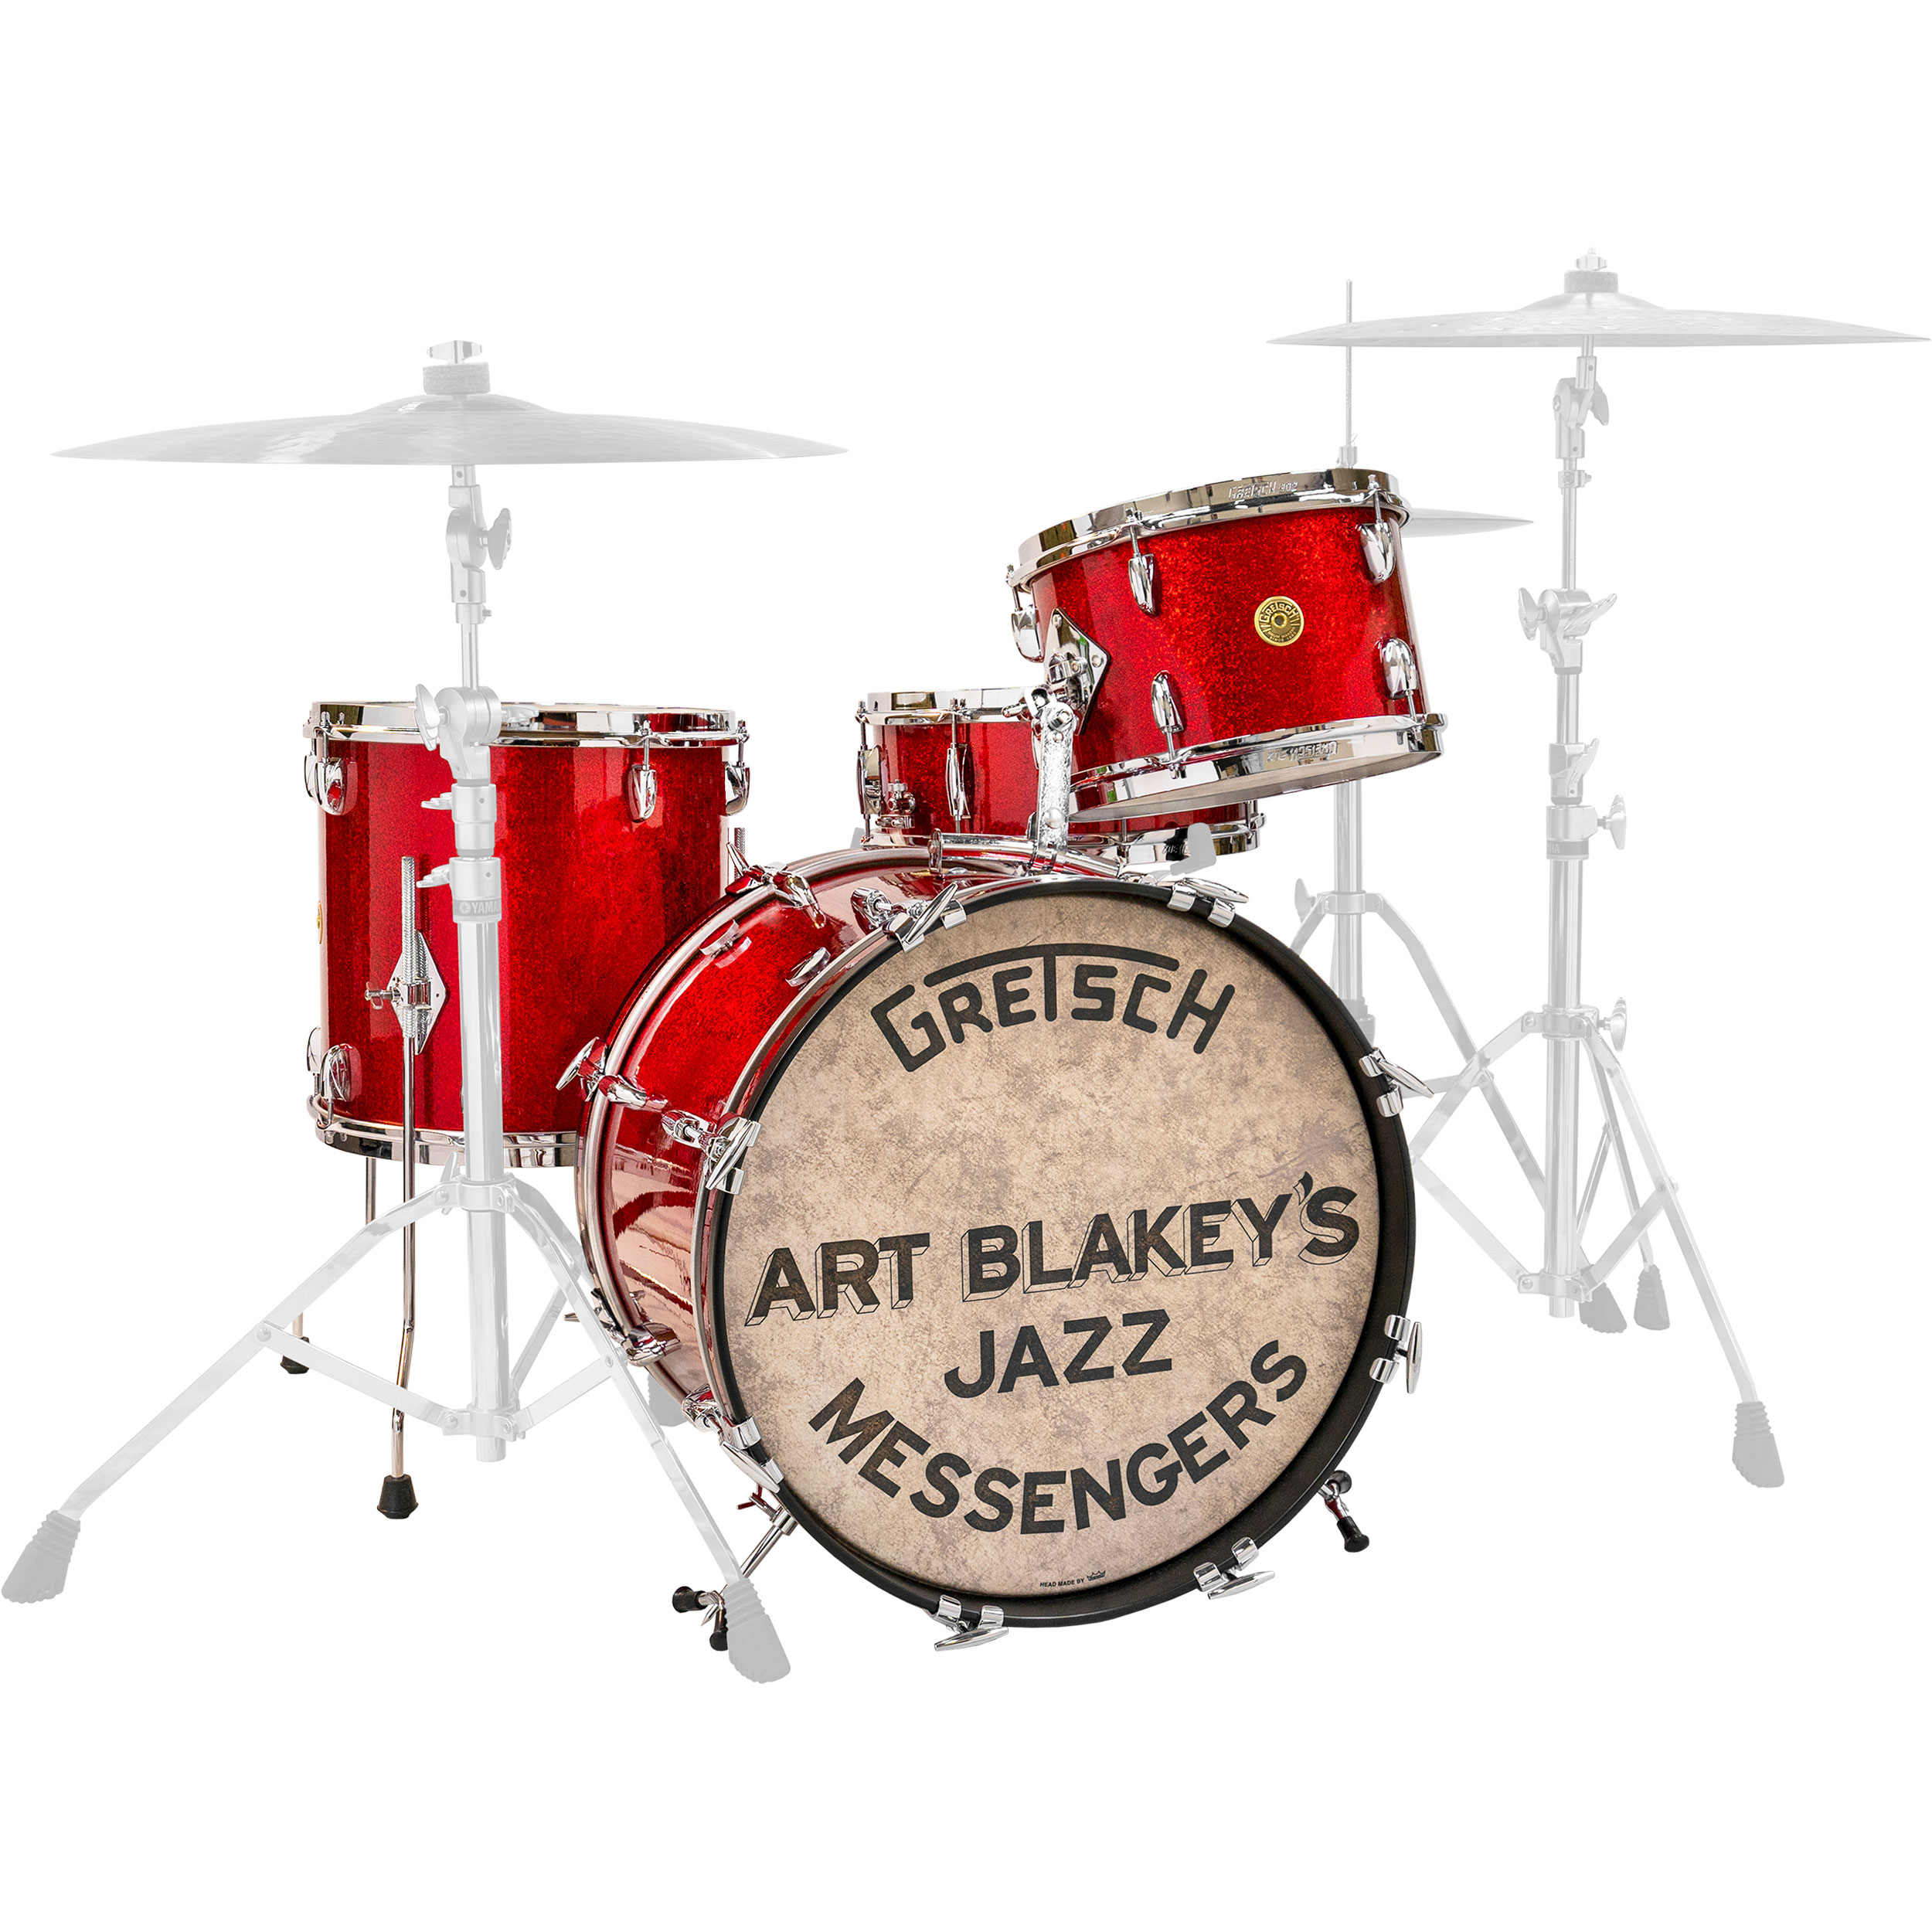 """Gretsch USA Custom Art Blakey Replica Drum Set Shell Pack (20"""" Bass, 12/14"""" Toms, 14"""" Snare) in Red Sparkle"""